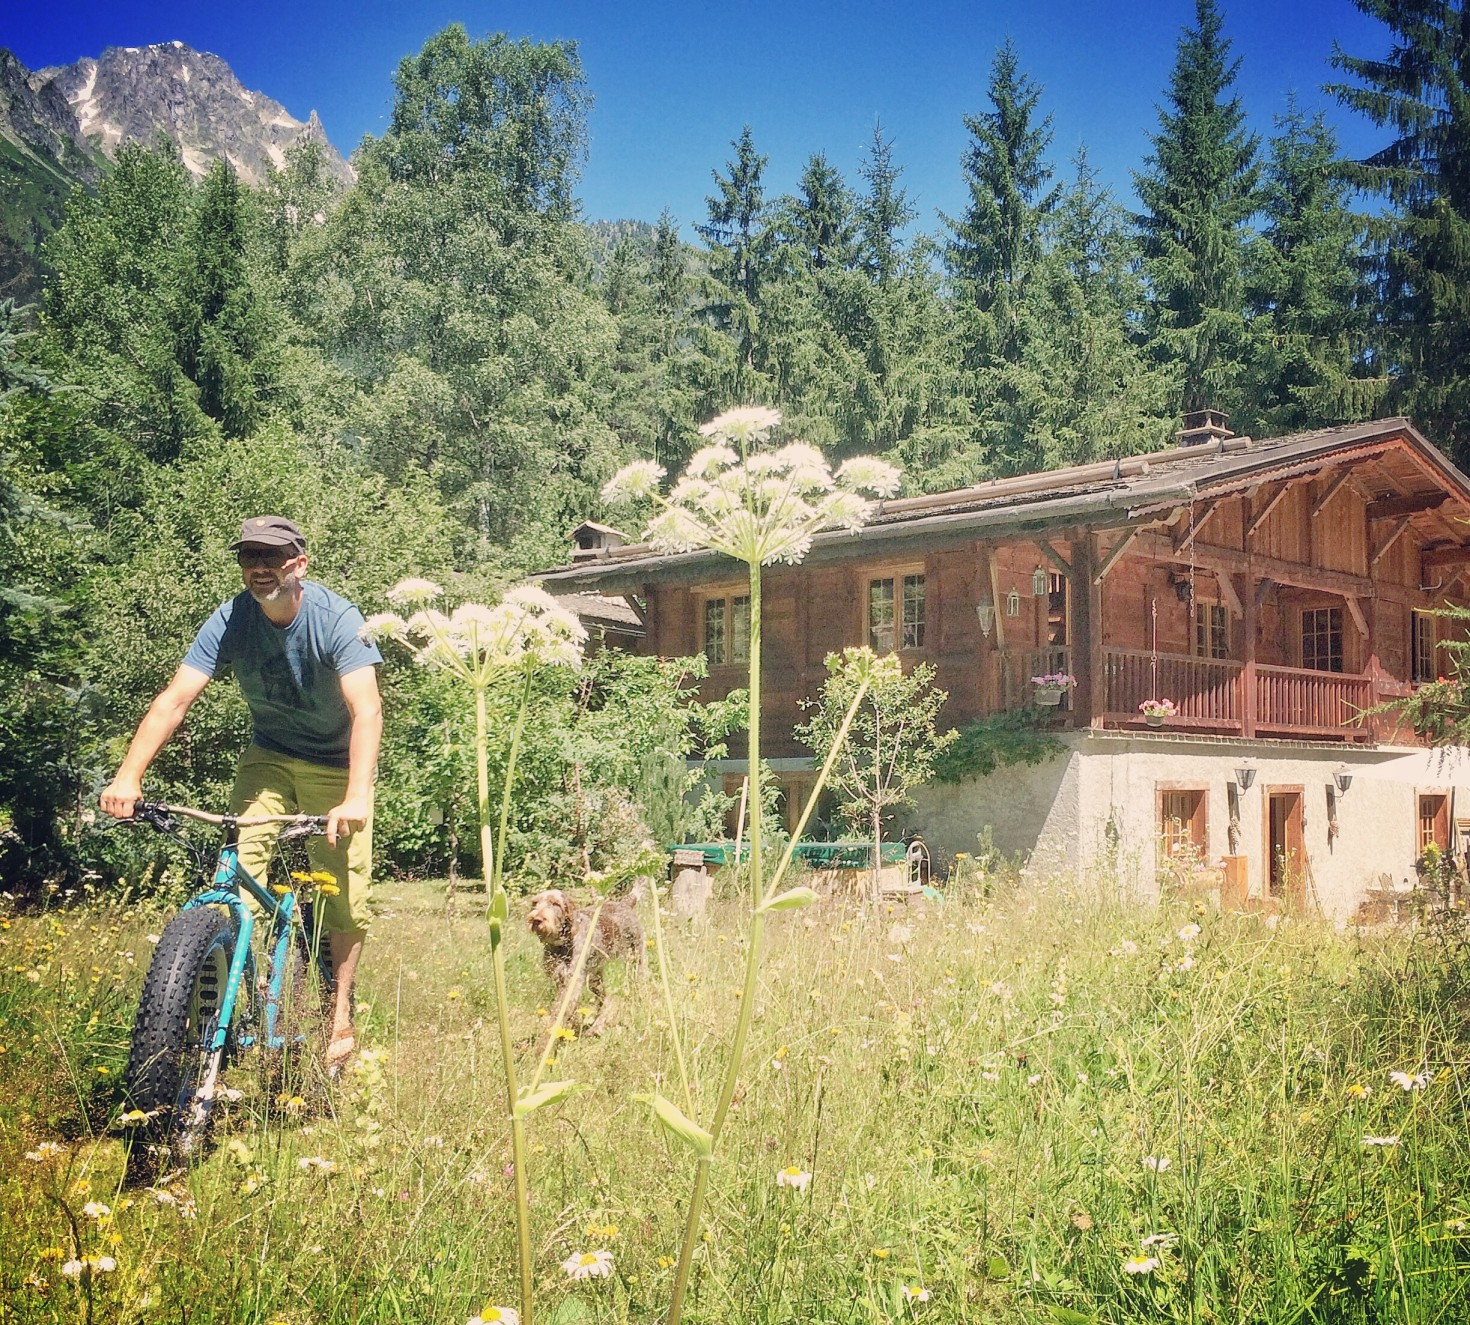 Fatbiking out of the chalet!